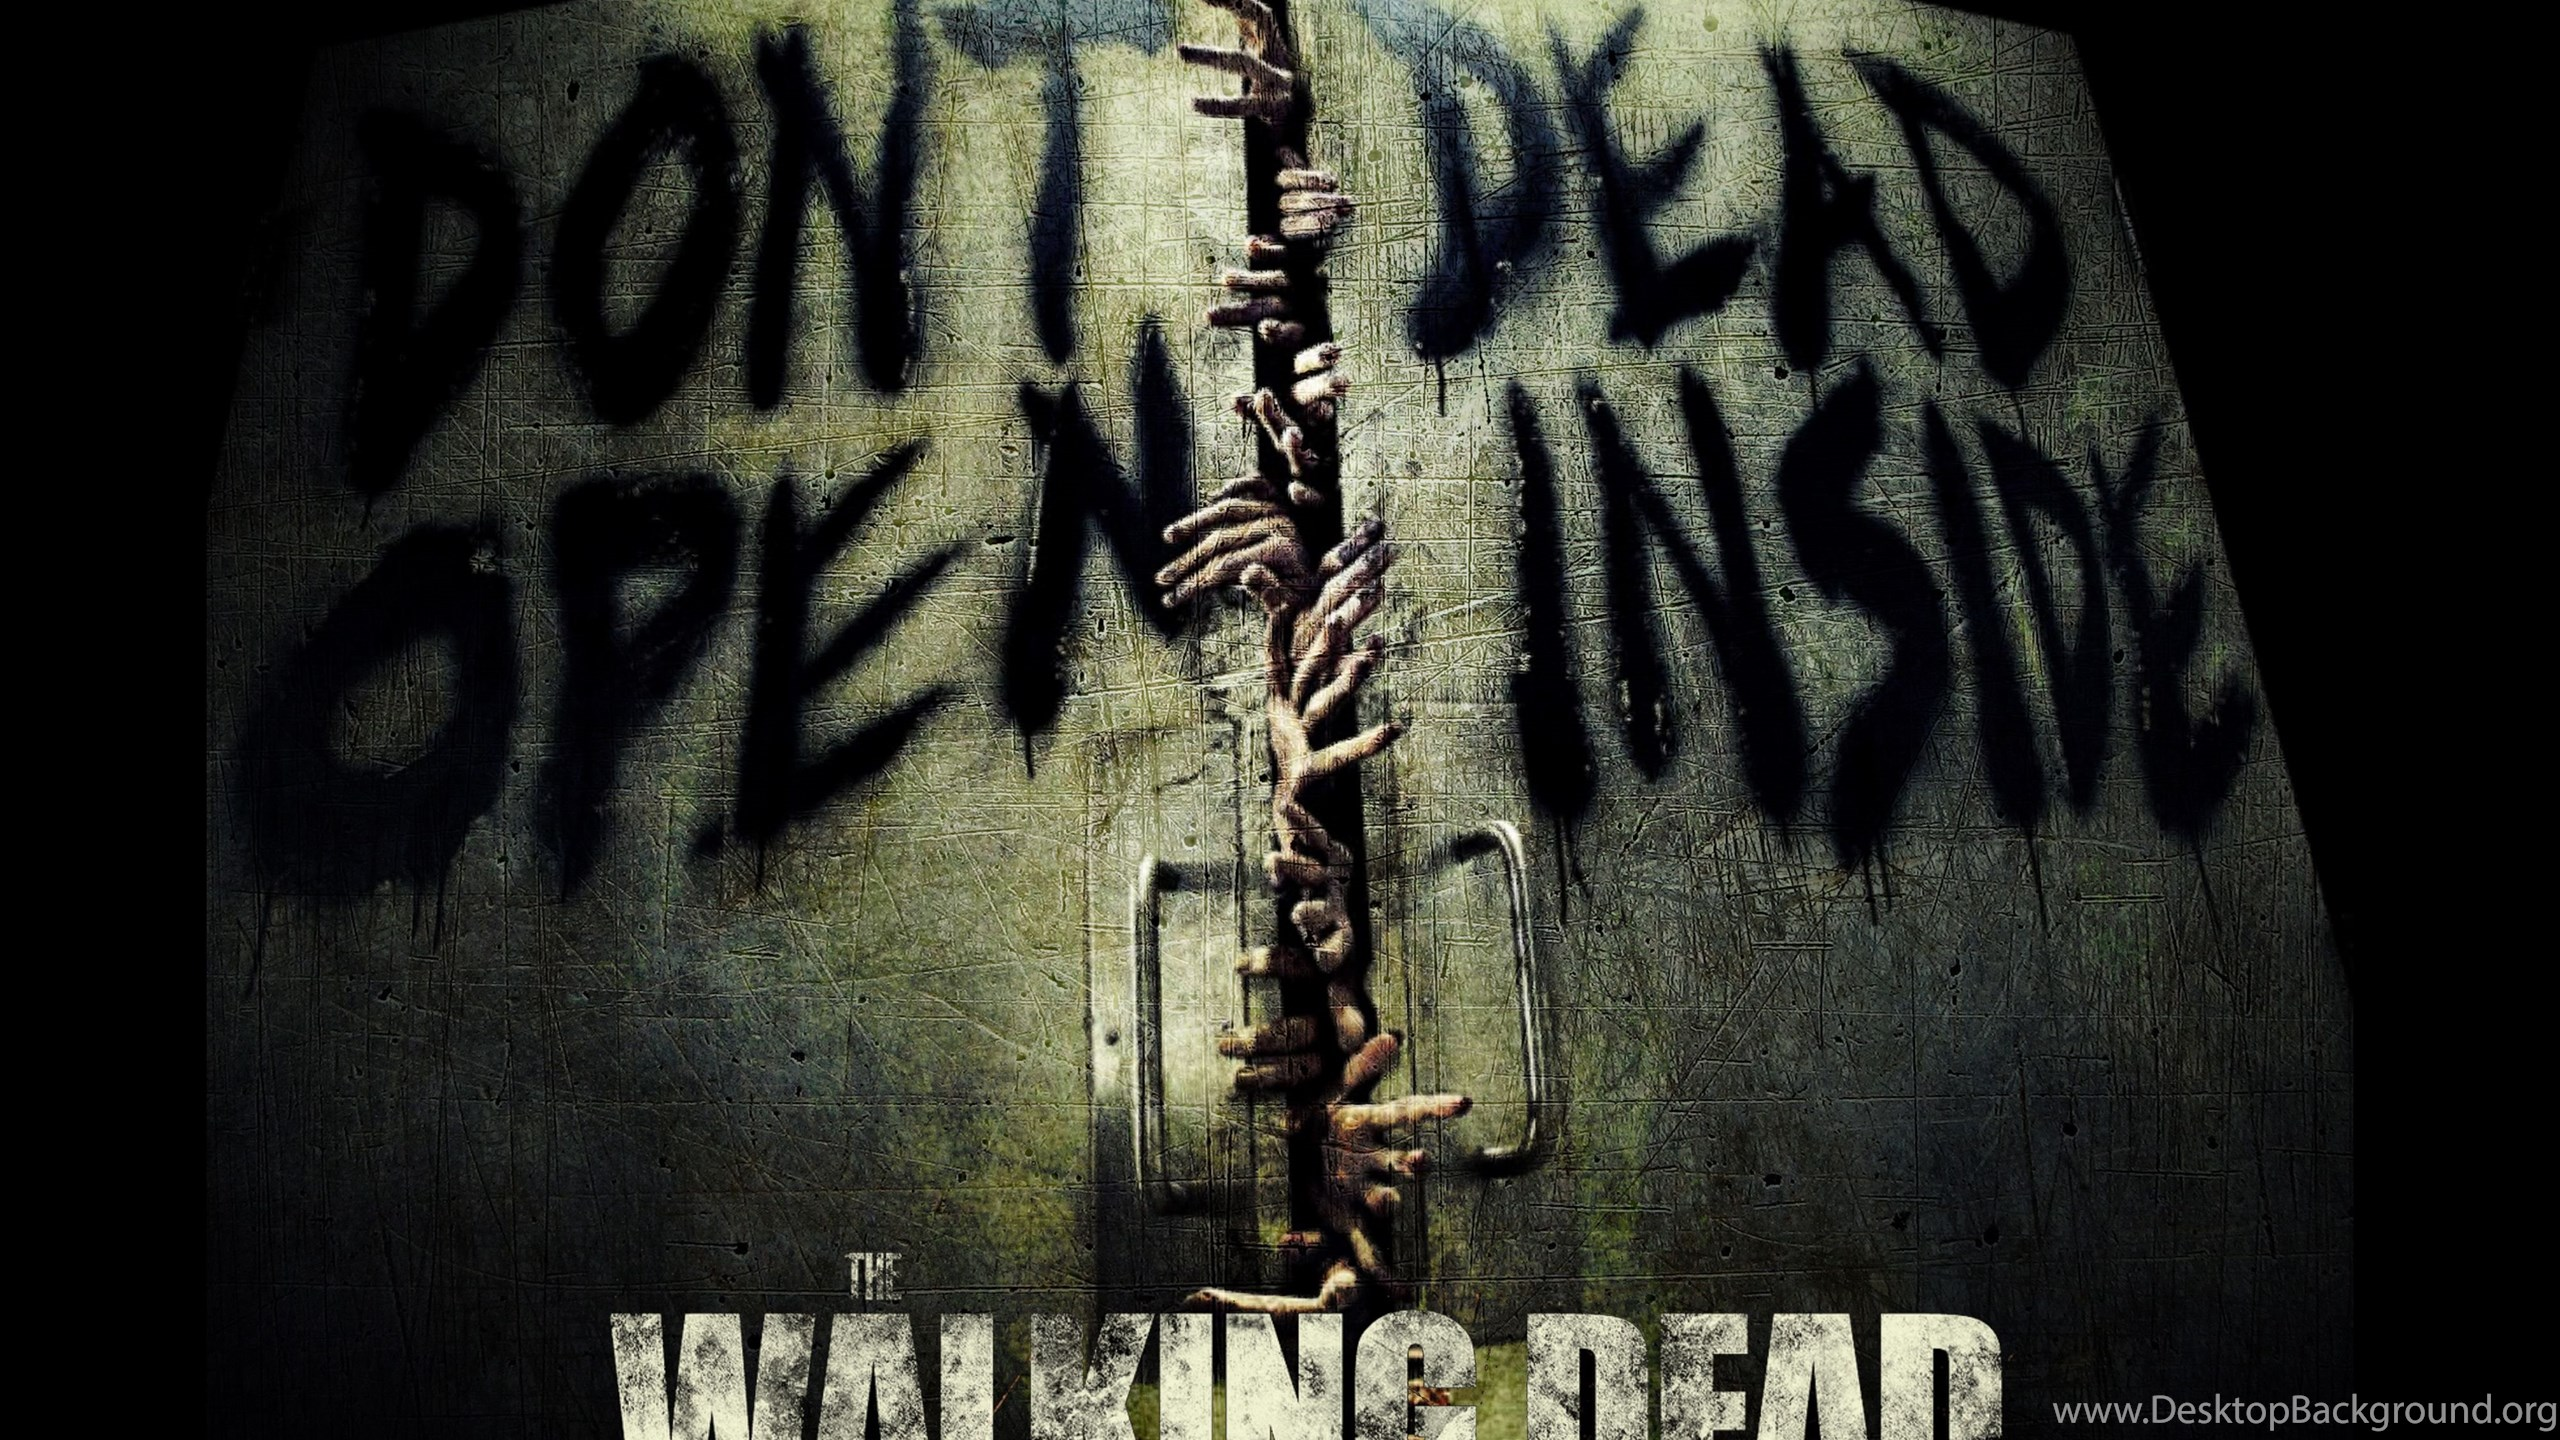 Walking Dead Wallpapers For Android: The Walking Dead Wallpapers HD Wallpaper Backgrounds Of